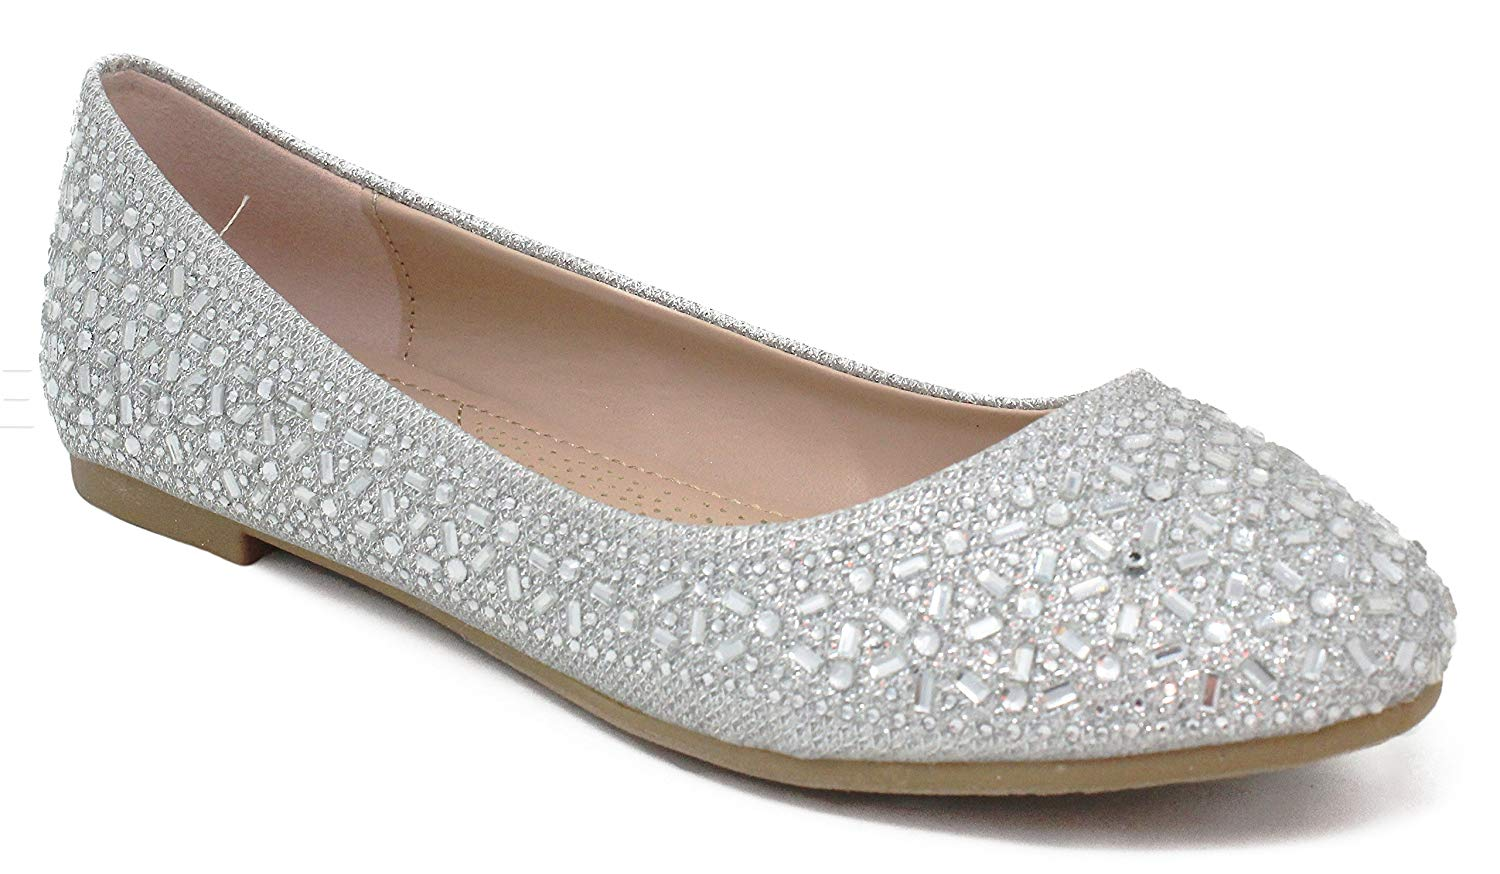 MVE Shoes Women's Crystal Rhinestone Slip On- Formal Glitter Flats